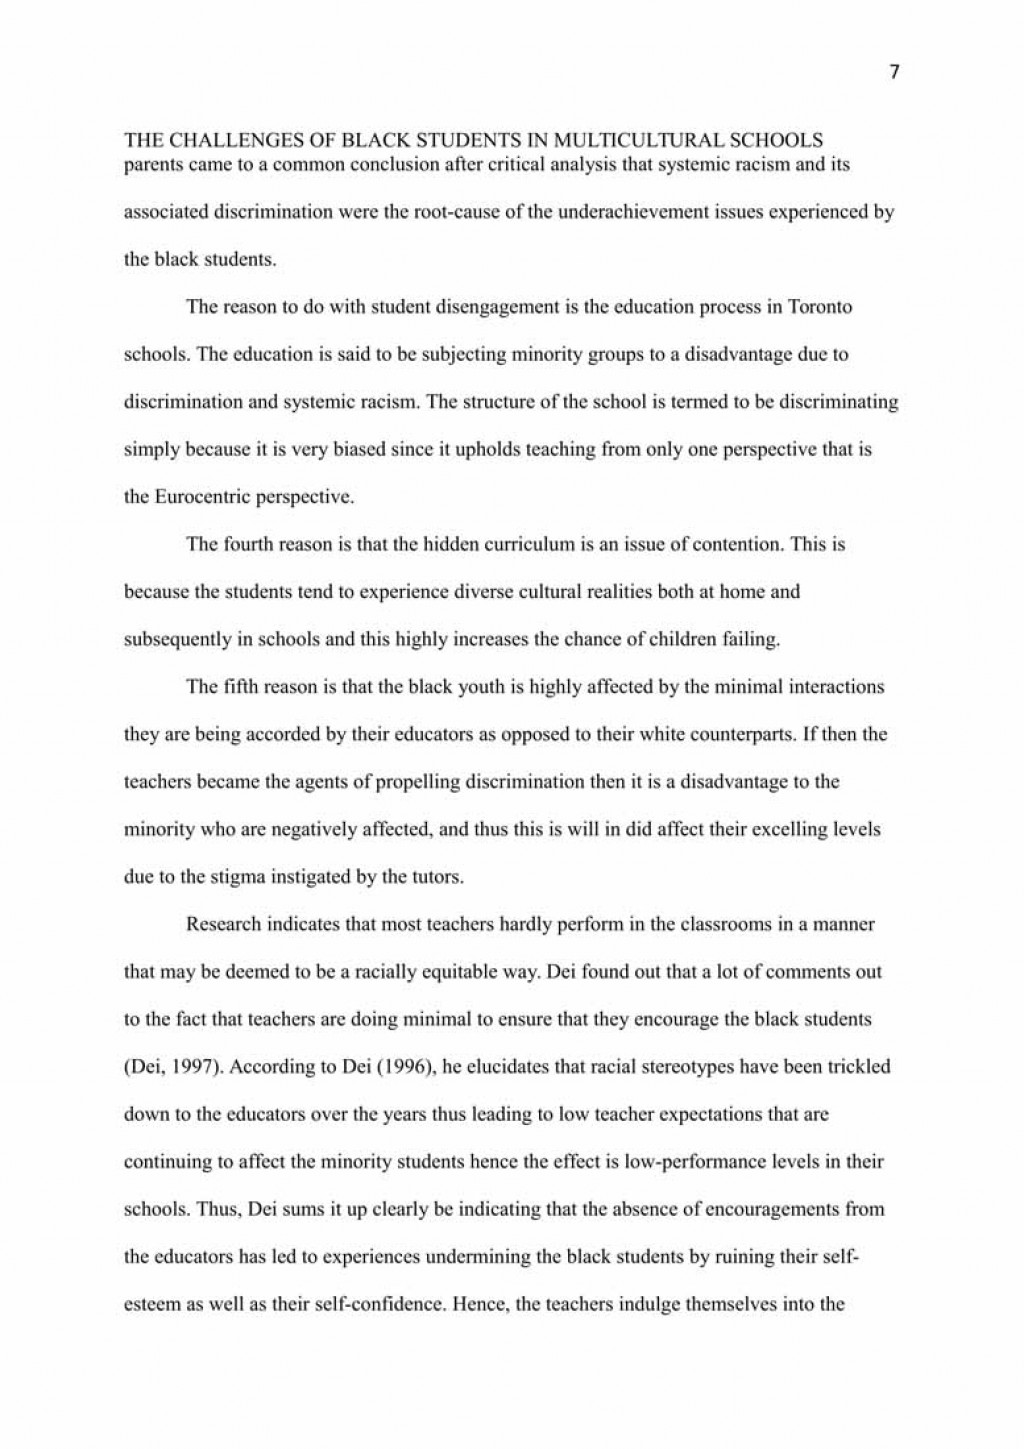 008 Discrimination Essay Excellent Titles Age Topics Large